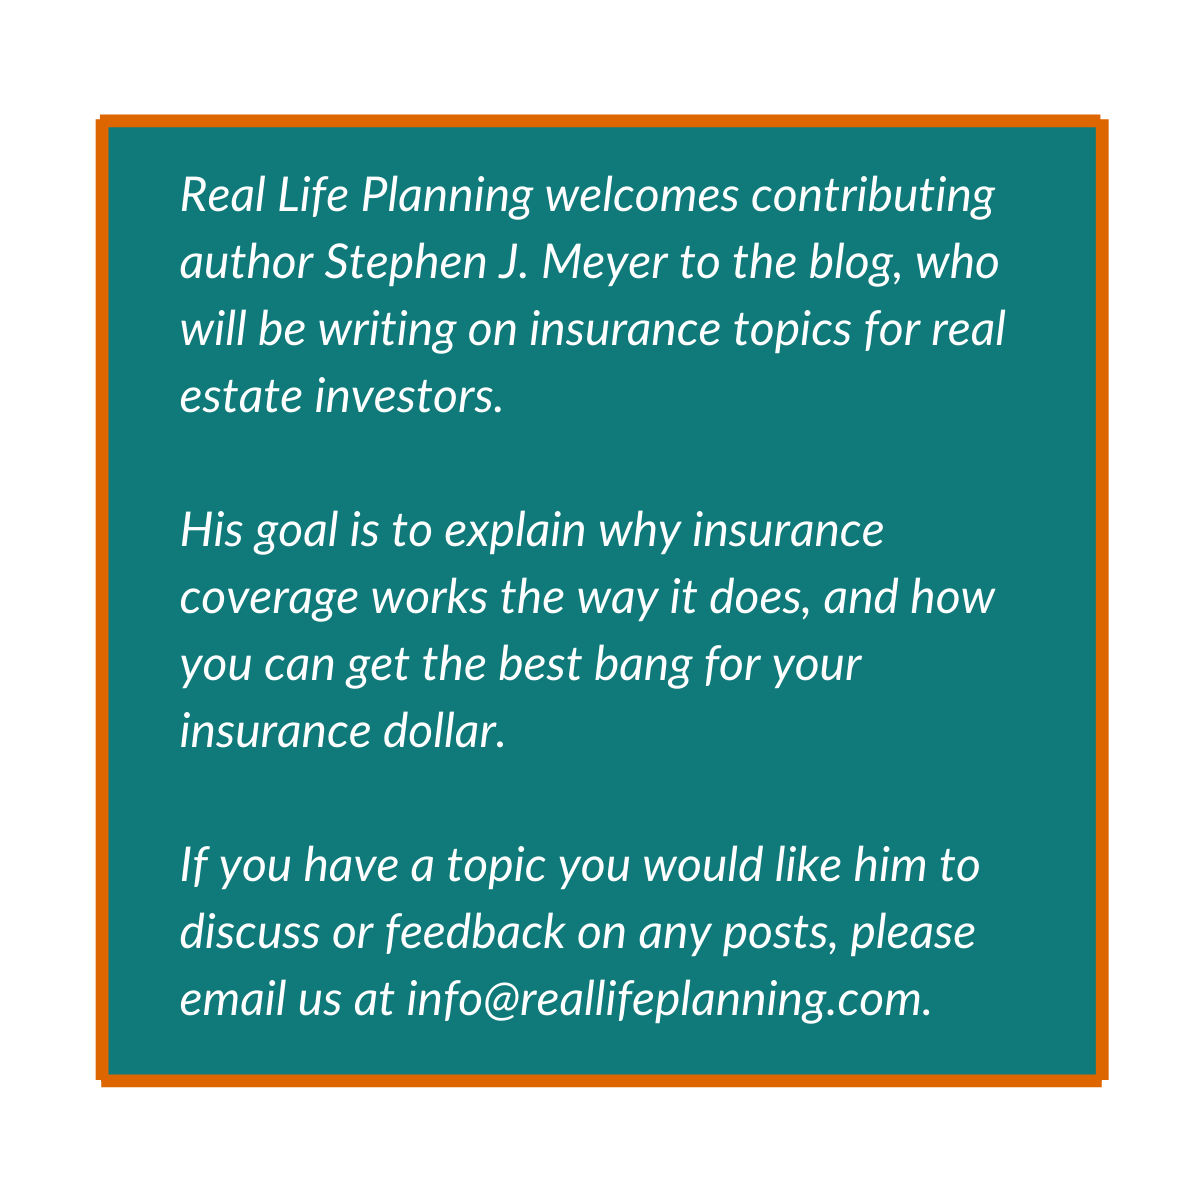 Welcome Stephen J. Meyer to the Real Life Planning Blog